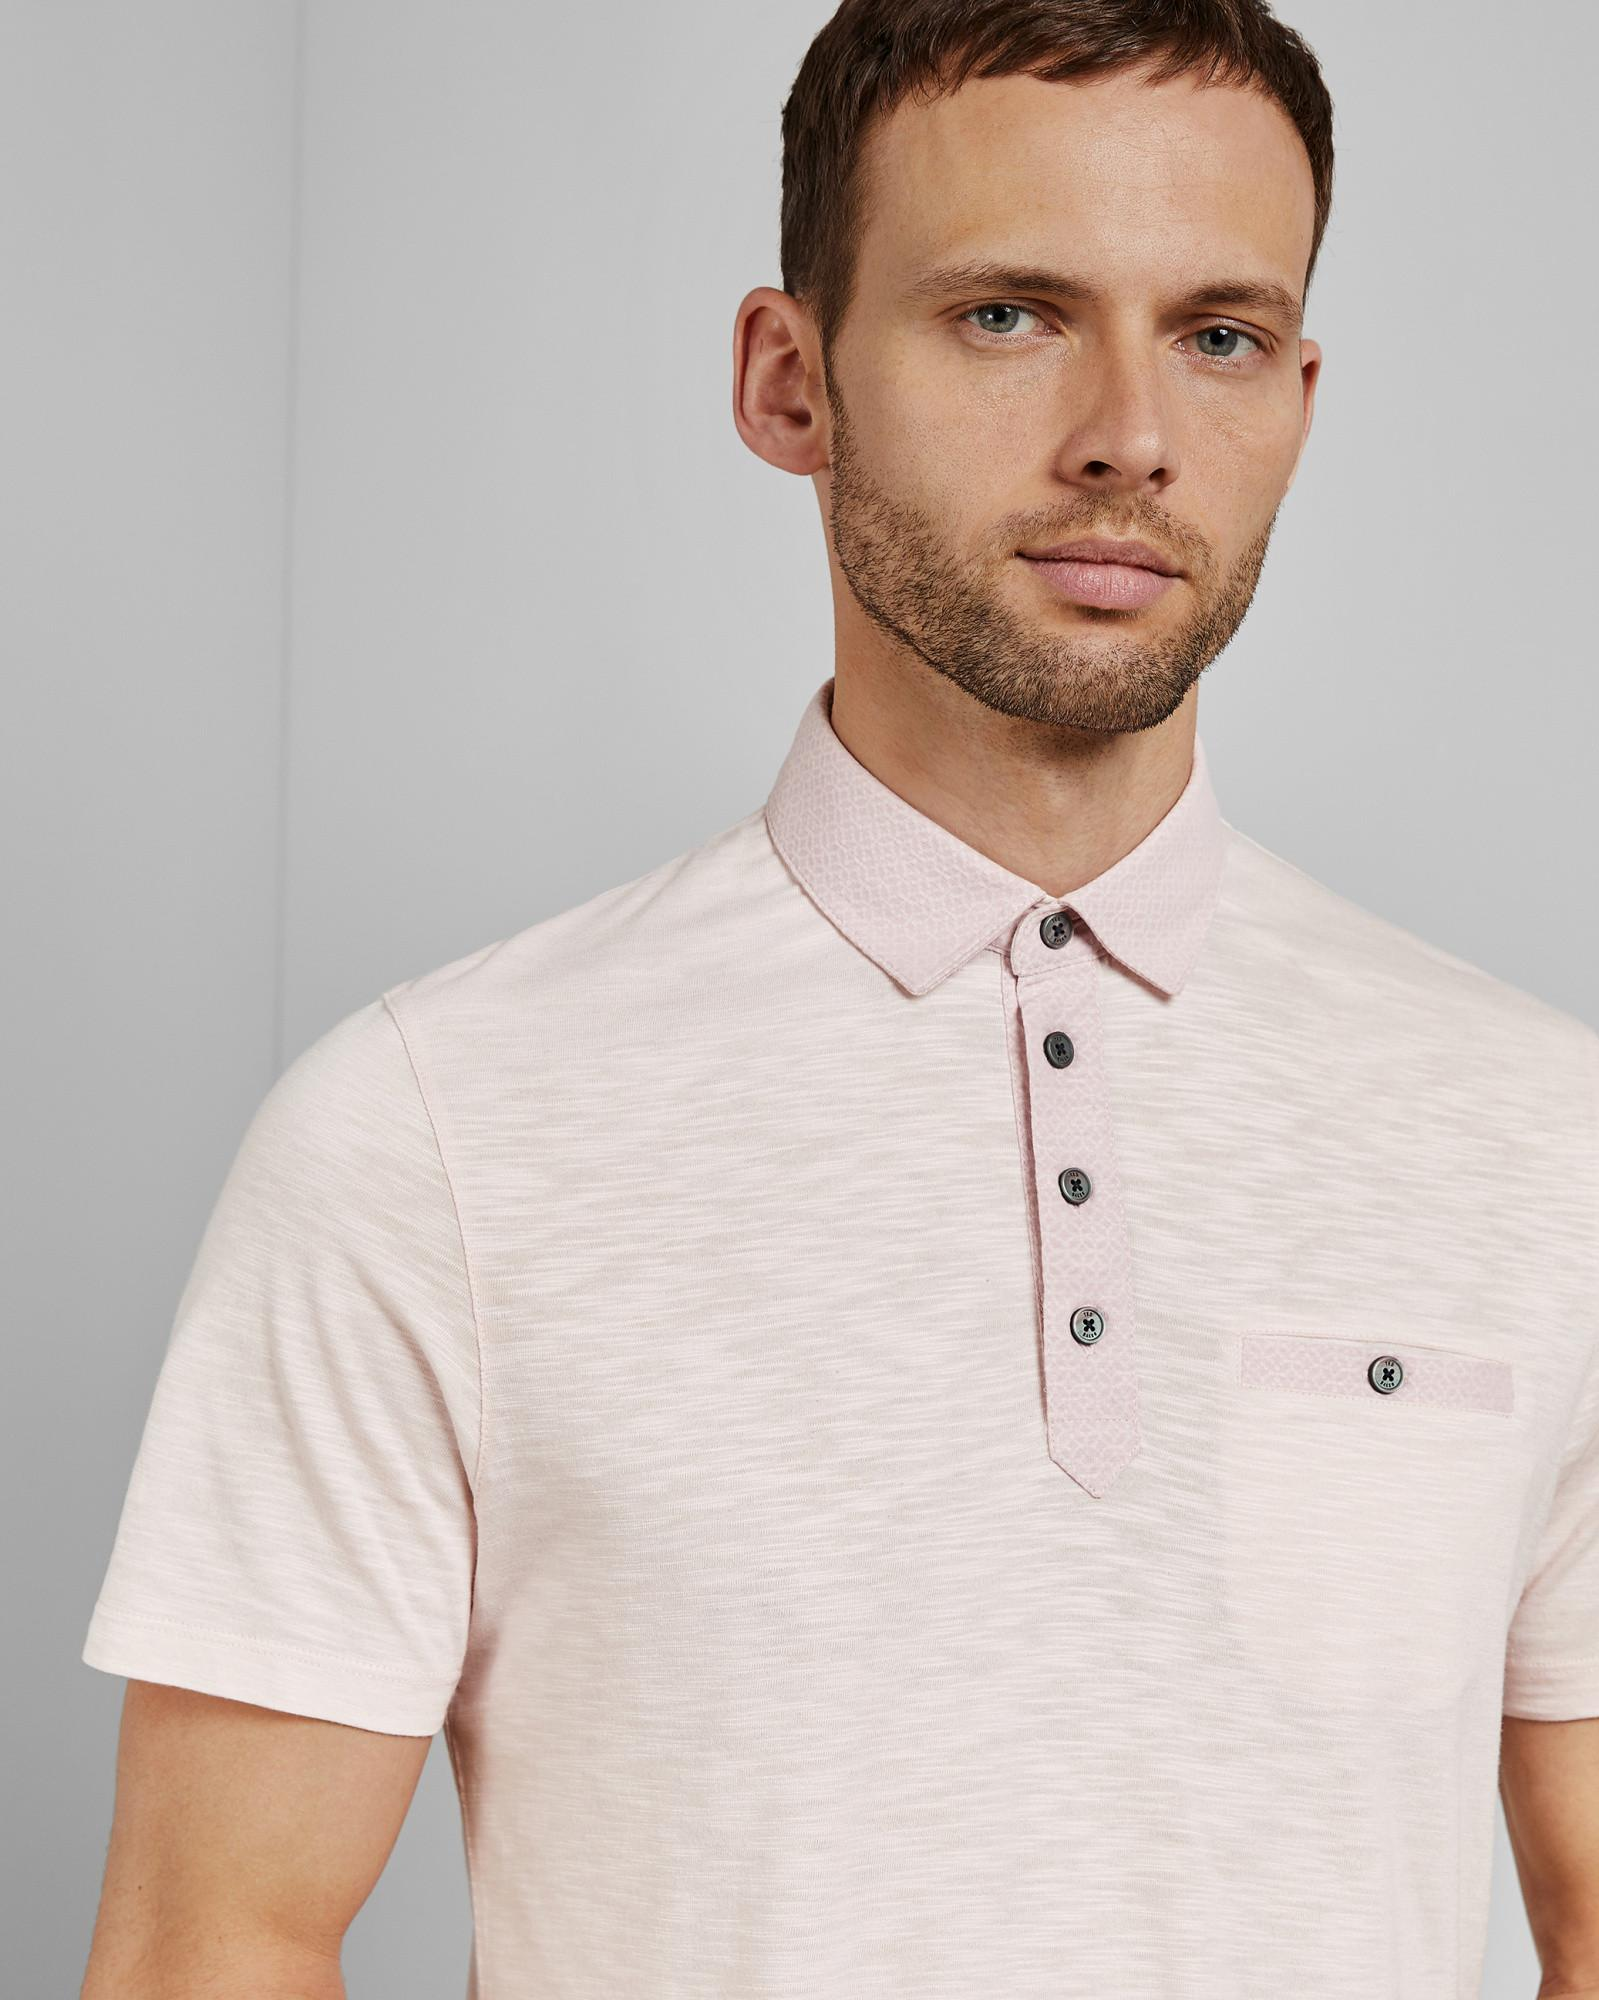 39e4352397db Lyst - Ted Baker Saharah Geo Collar Regular Fit Polo Shirt in Pink ...